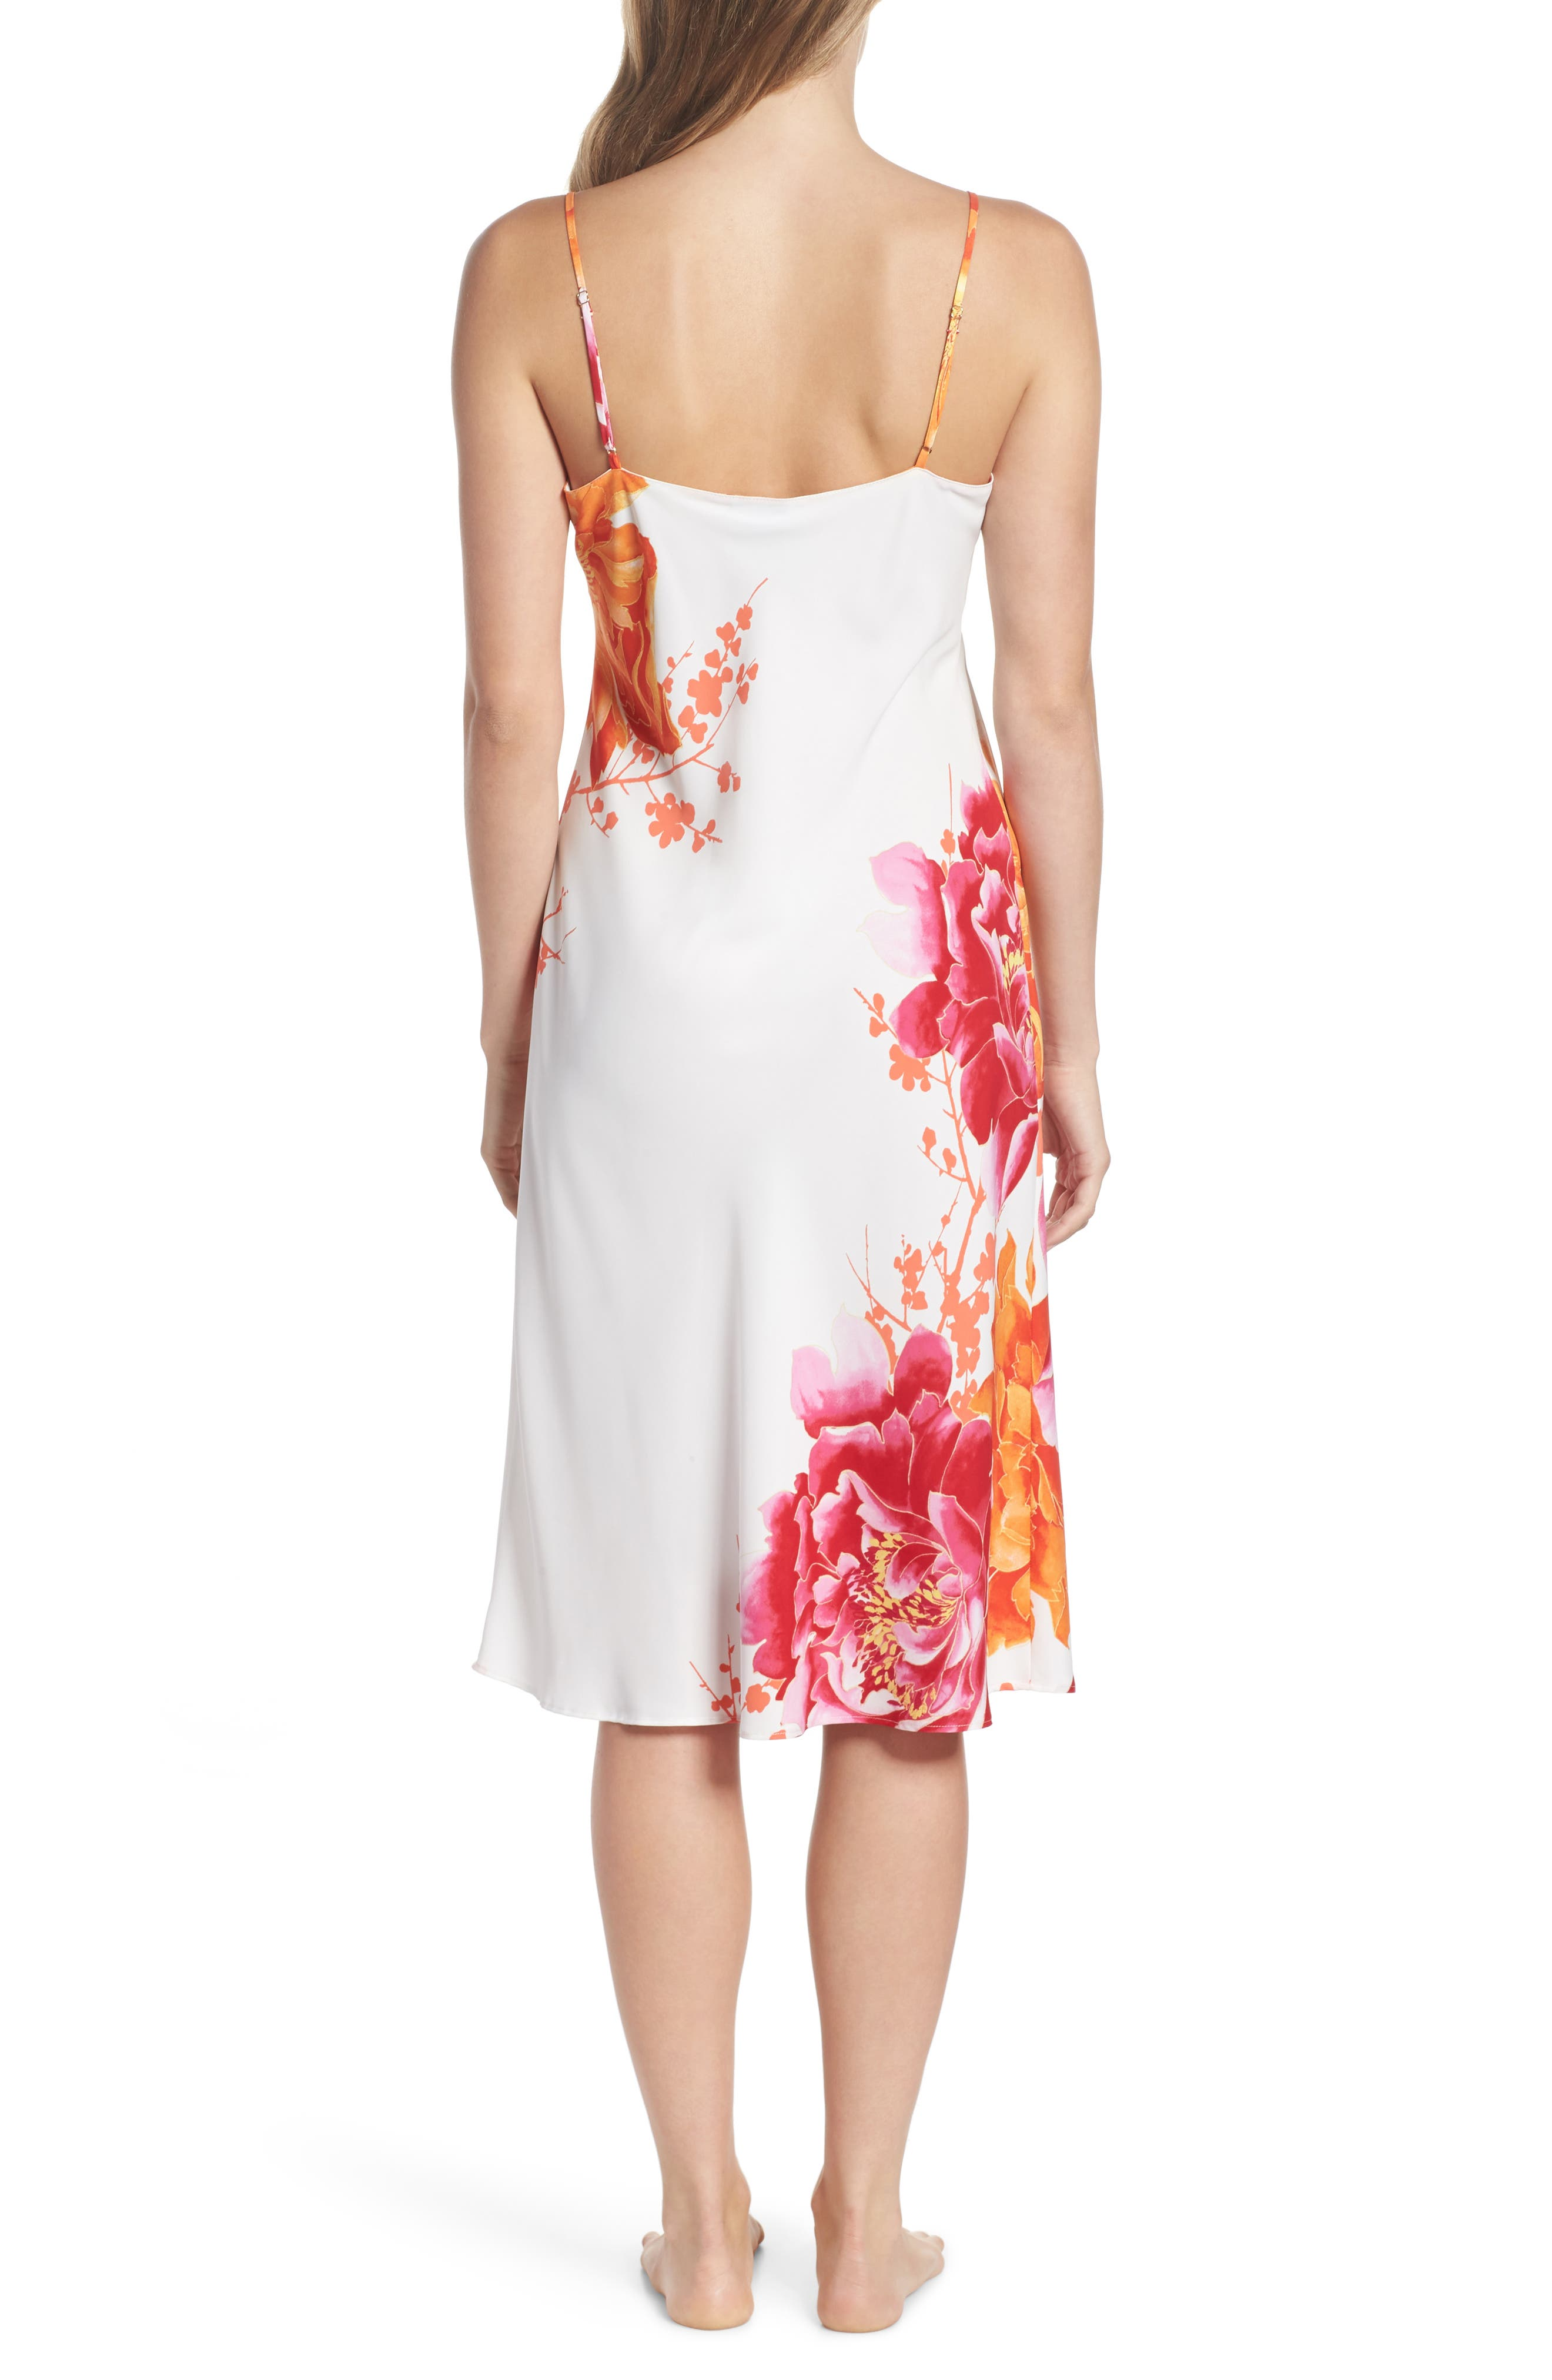 Bali Floral Print Slip,                             Alternate thumbnail 2, color,                             100